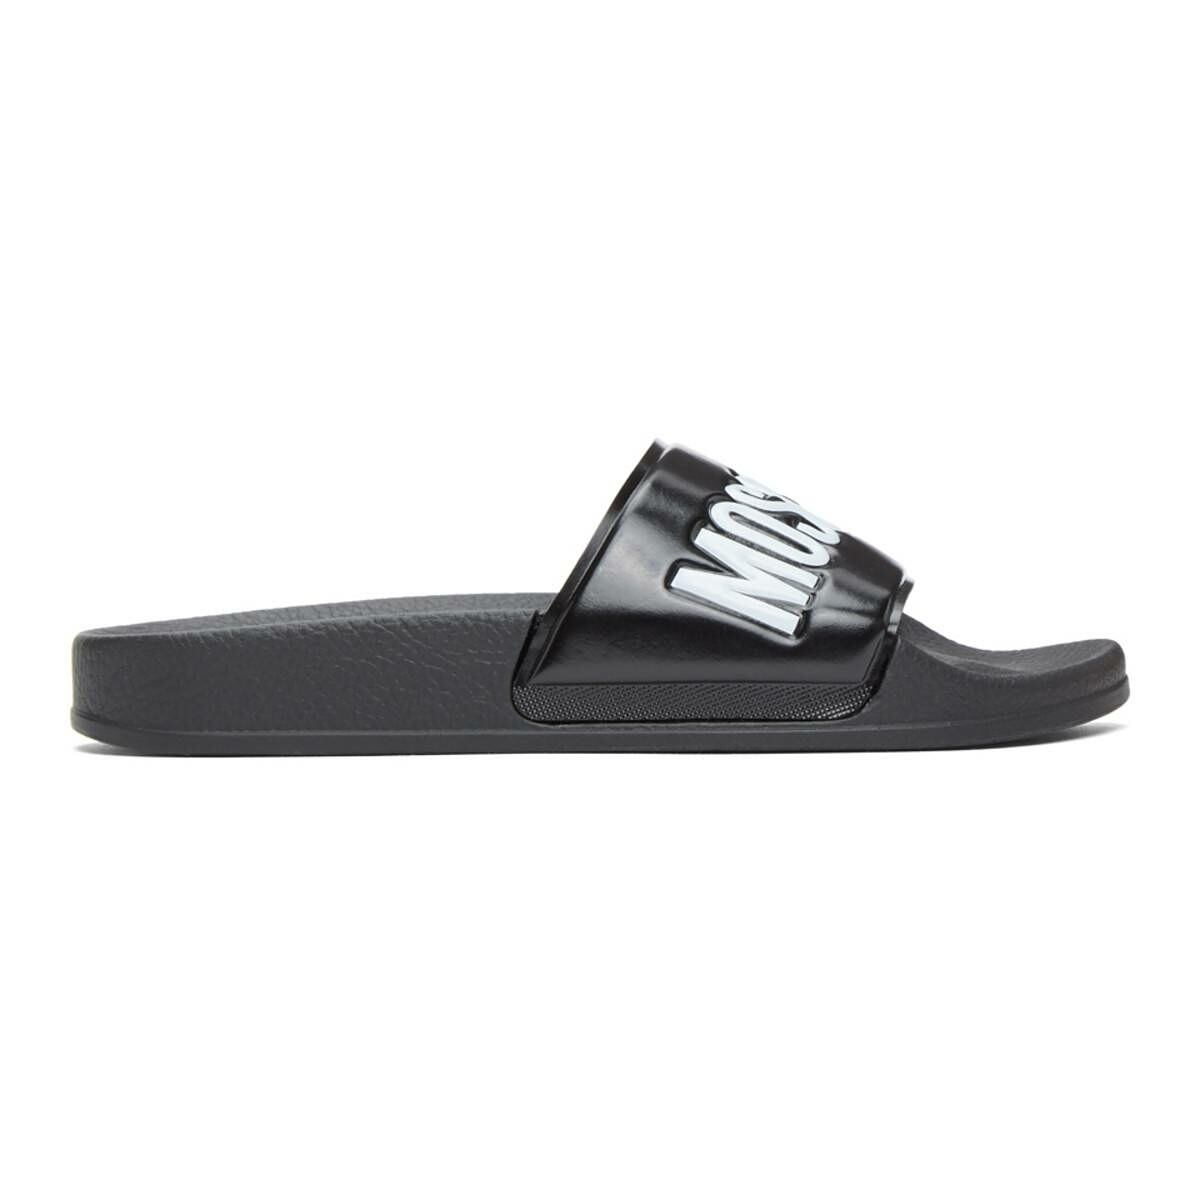 Moschino Black Logo Slides Ssense USA MEN Men SHOES Mens SANDALS